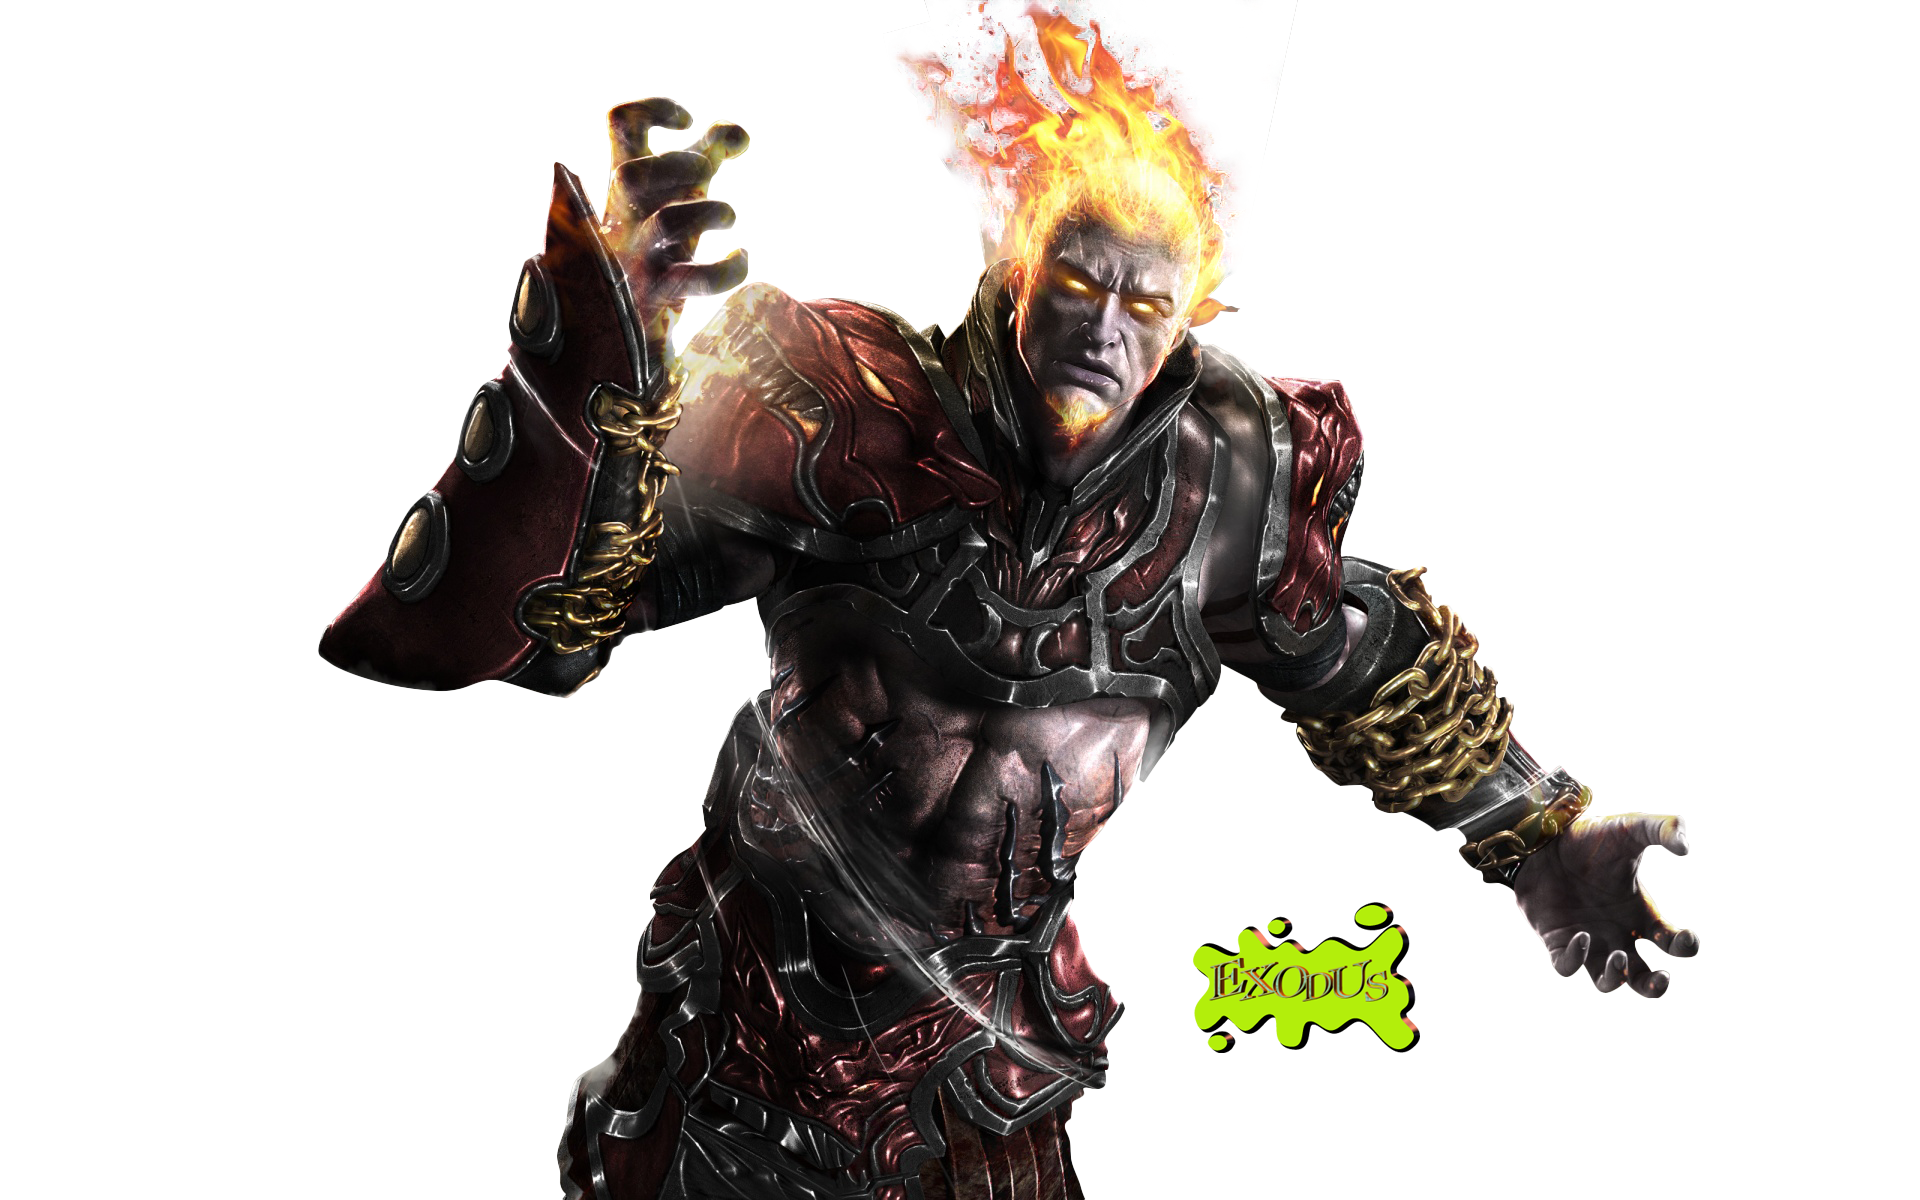 God of War PNG Image